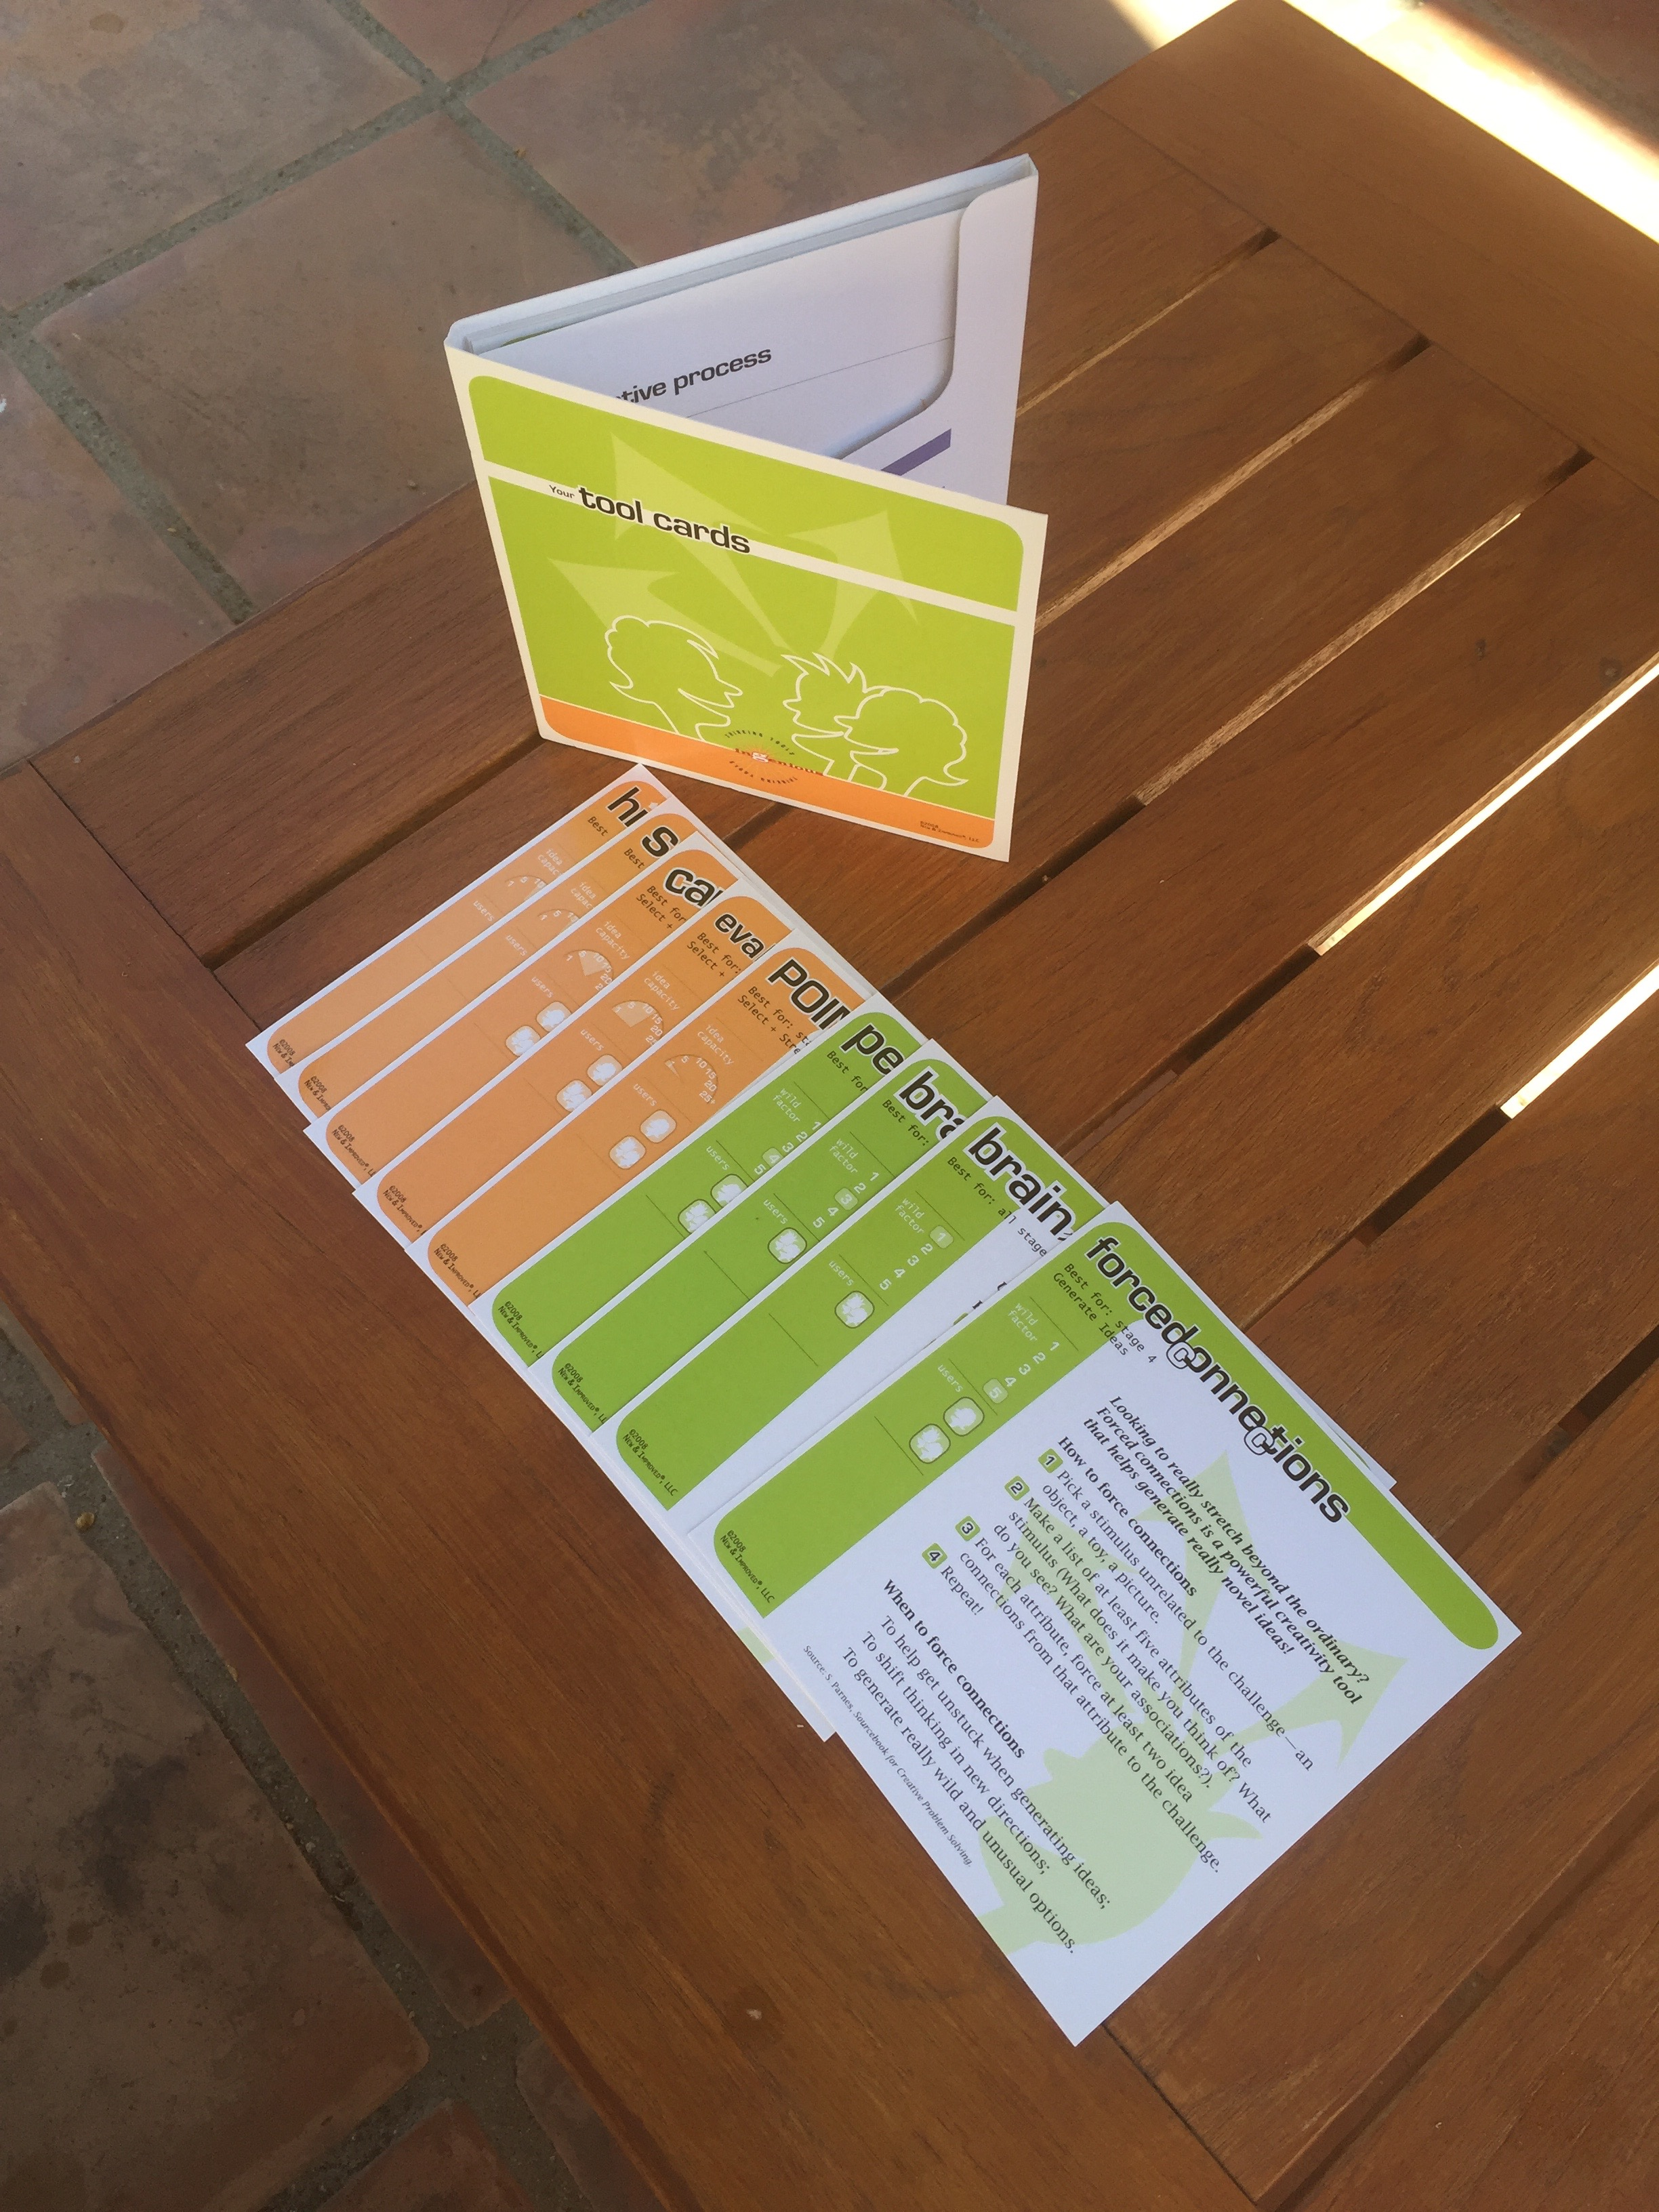 Innovation for Results Tool-Cards, by New and Improved, LLC, 14 Cards placed into a card cover with inside pocket